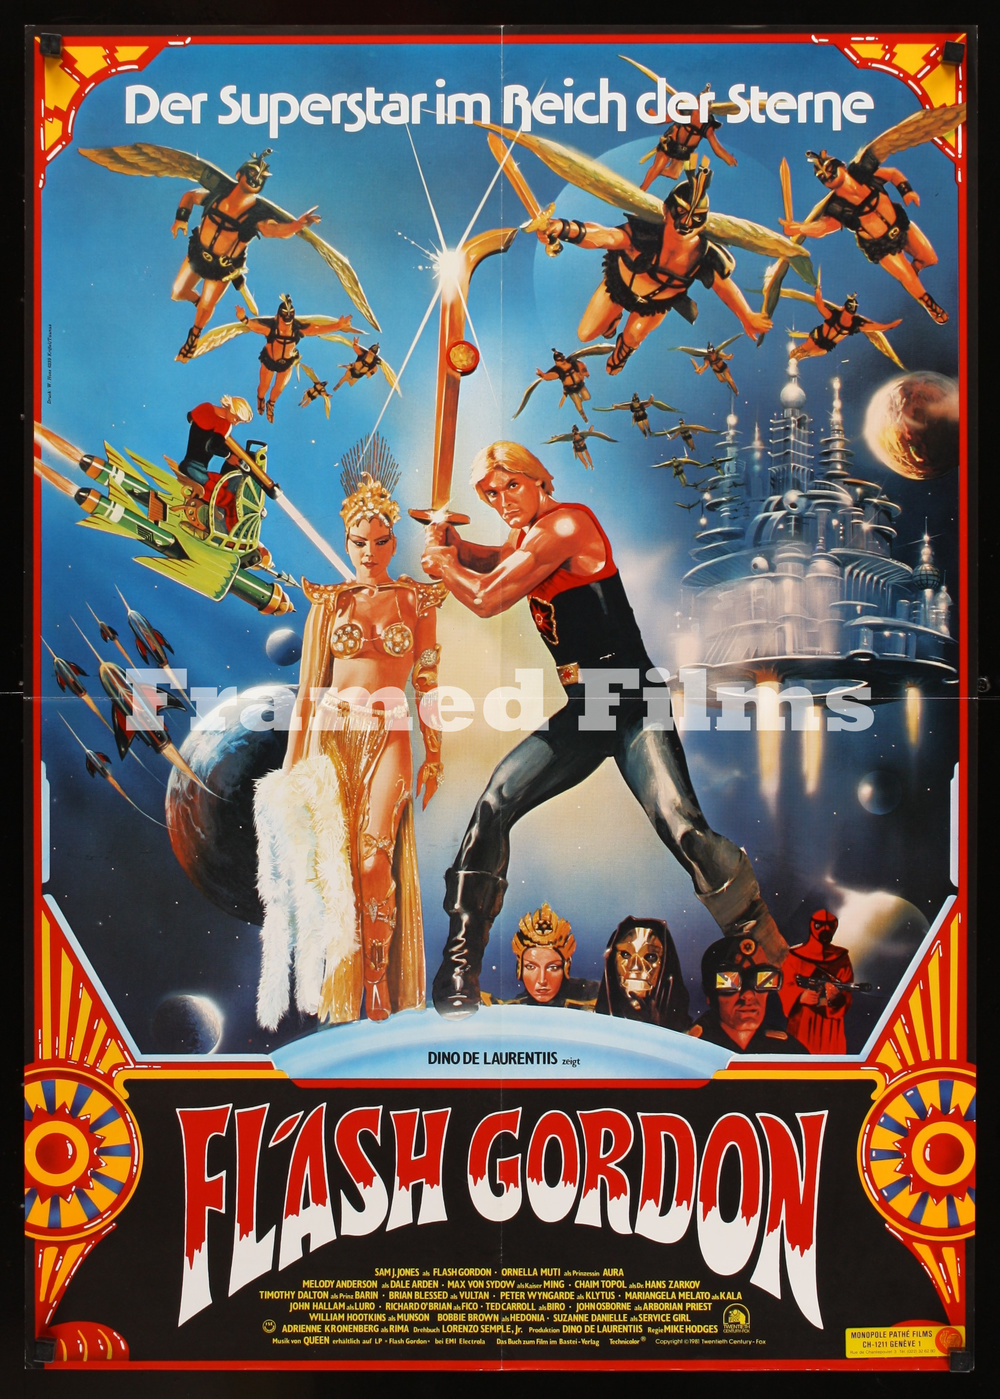 german_a1_flash_gordon_NZ02801_L.jpg